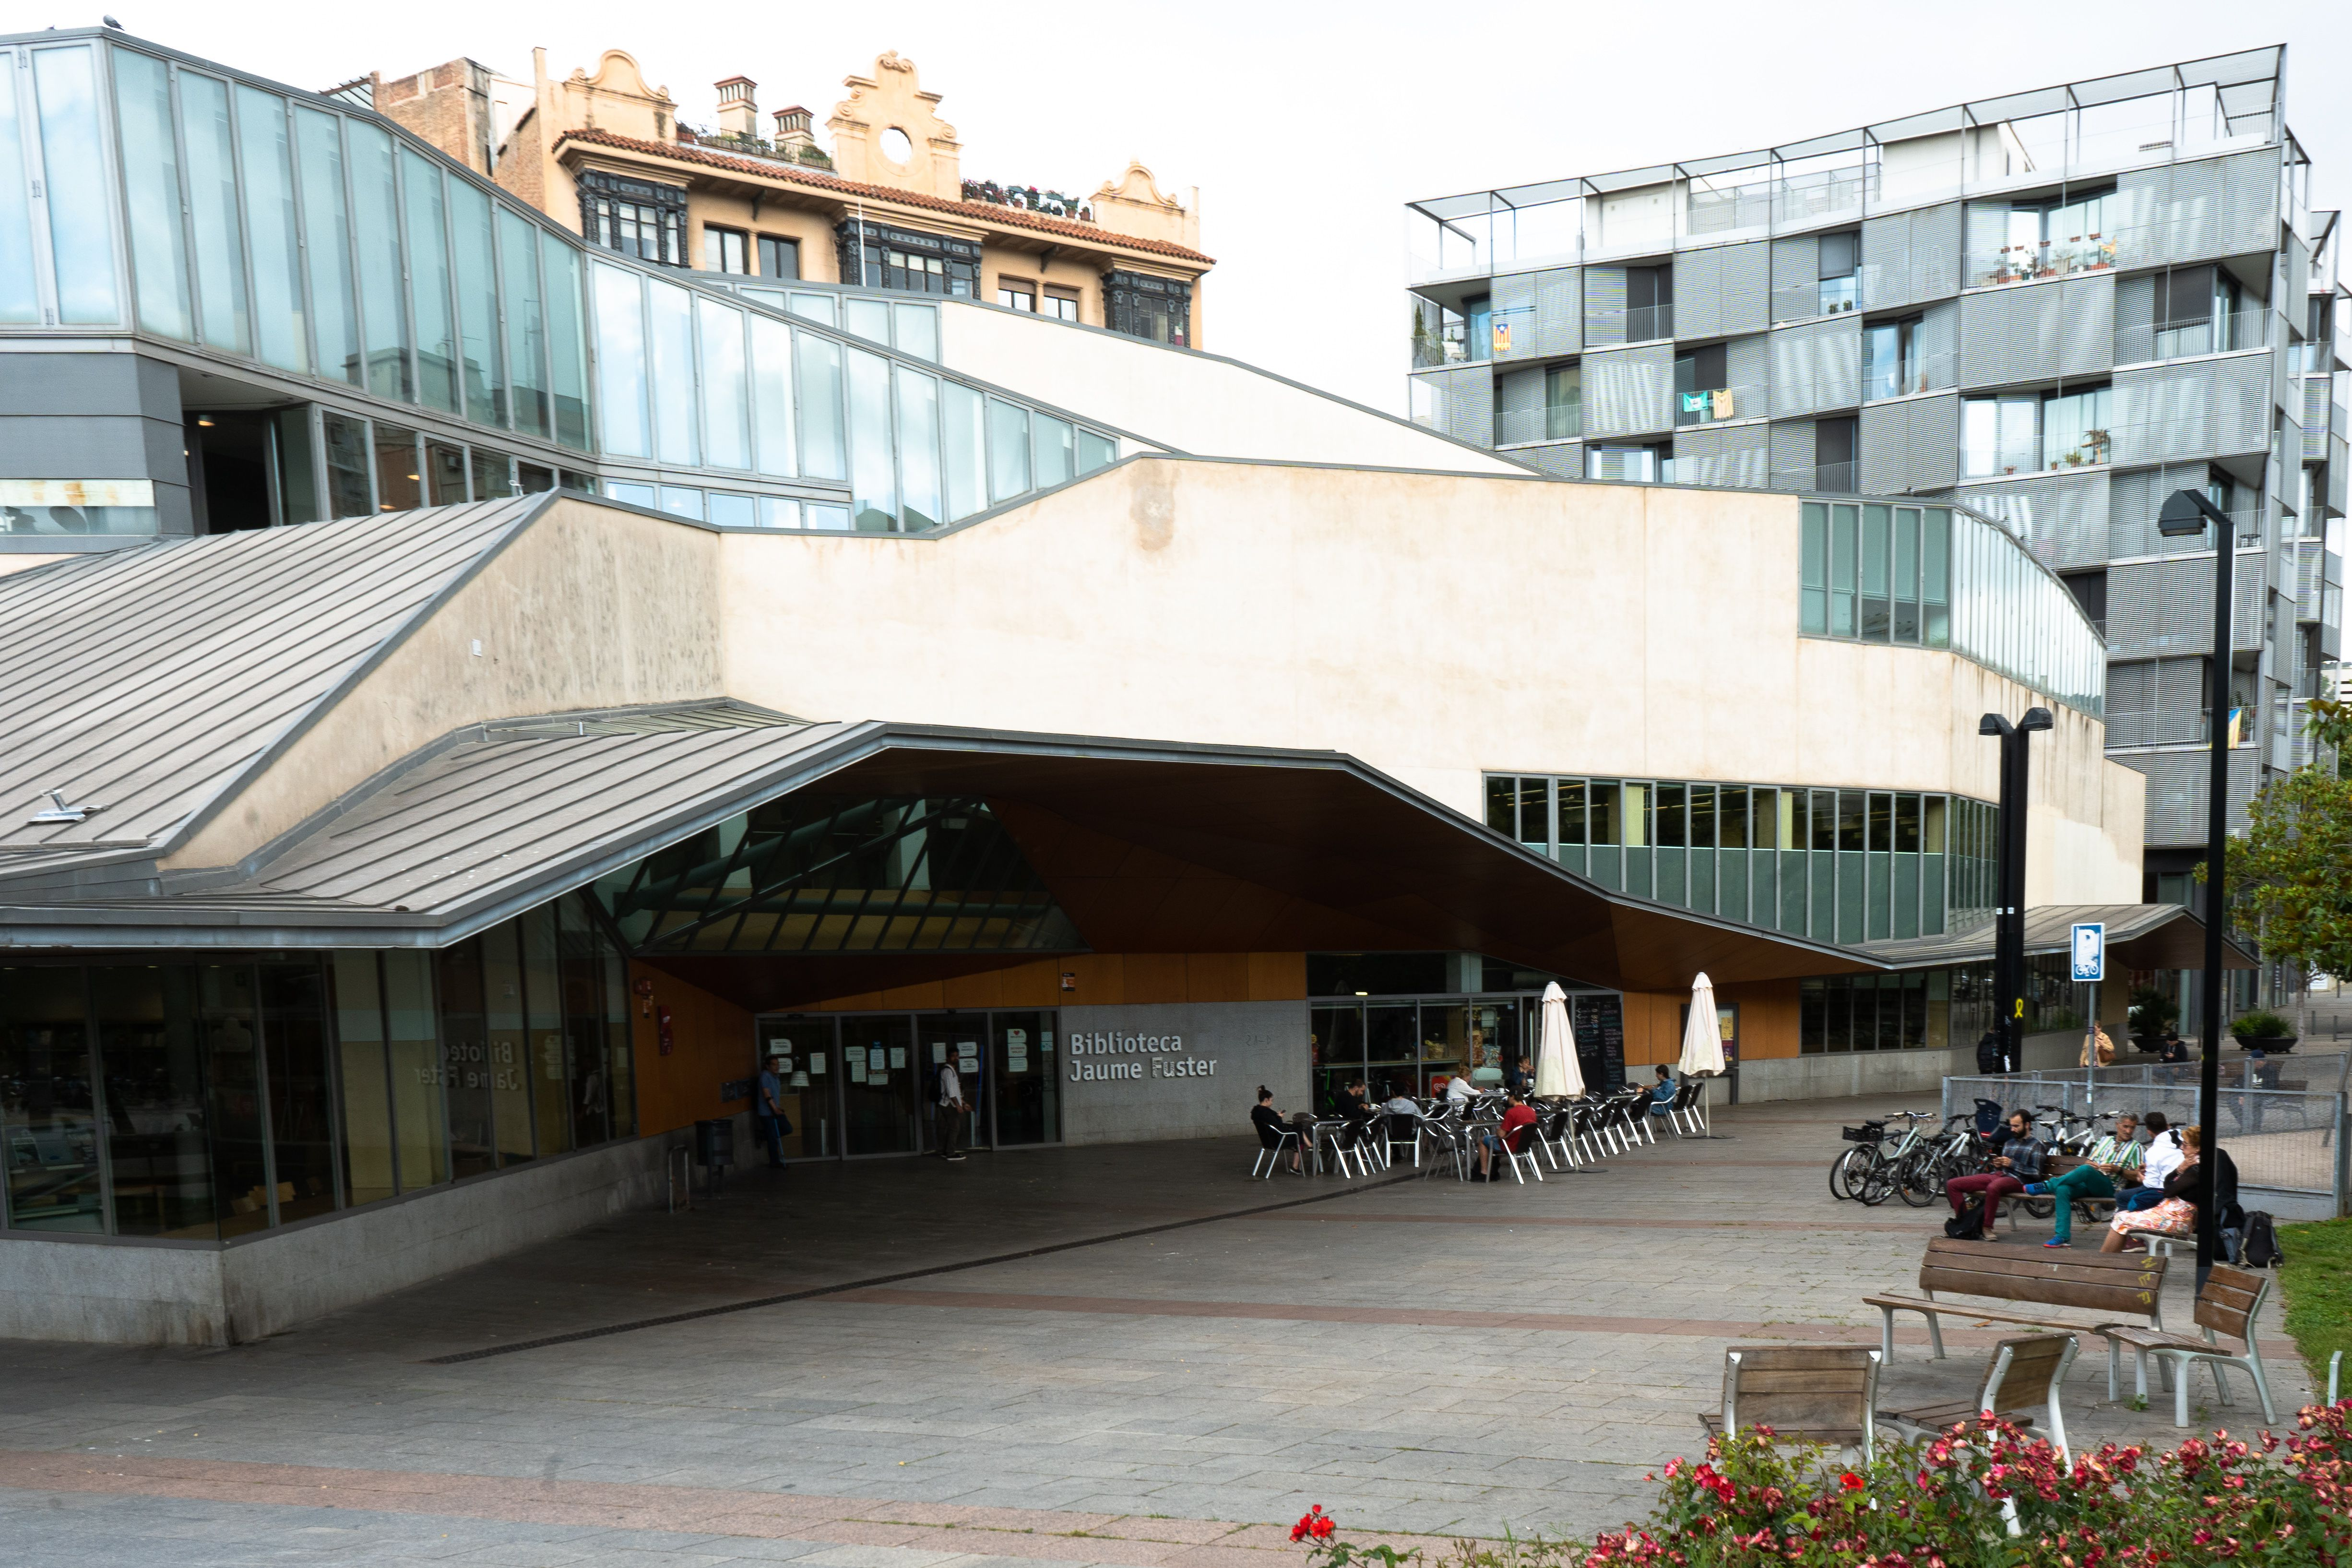 The exterior of the Jaume Fuster library with people sitting at tables